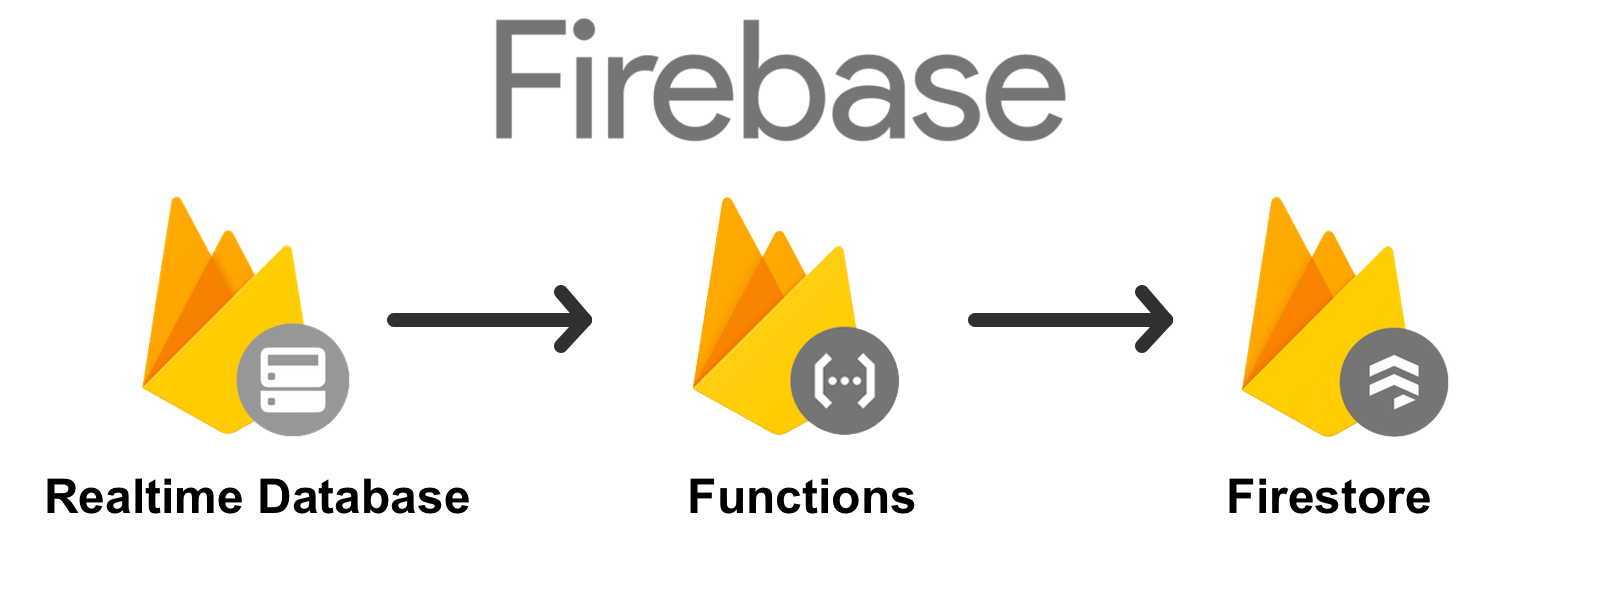 Replicating Data from Firebase to Firestore with Cloud